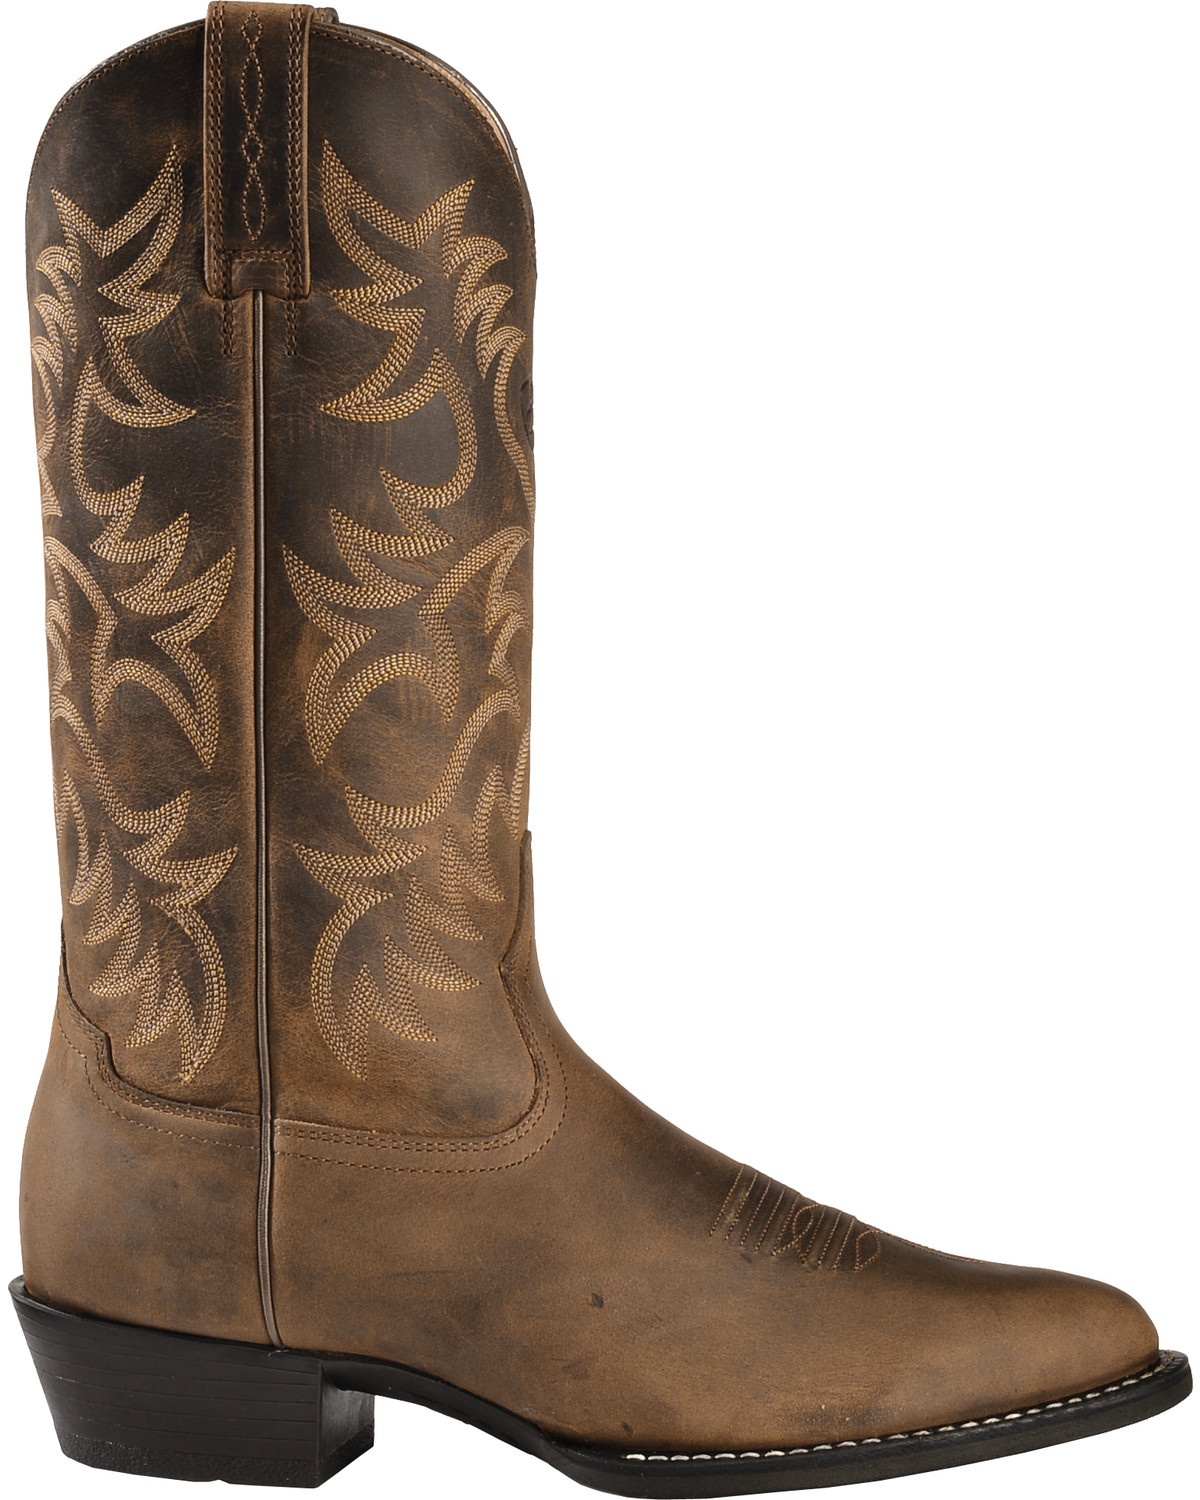 Ats On Demand >> Ariat Heritage Cowboy Boots - Medium Toe - Country Outfitter